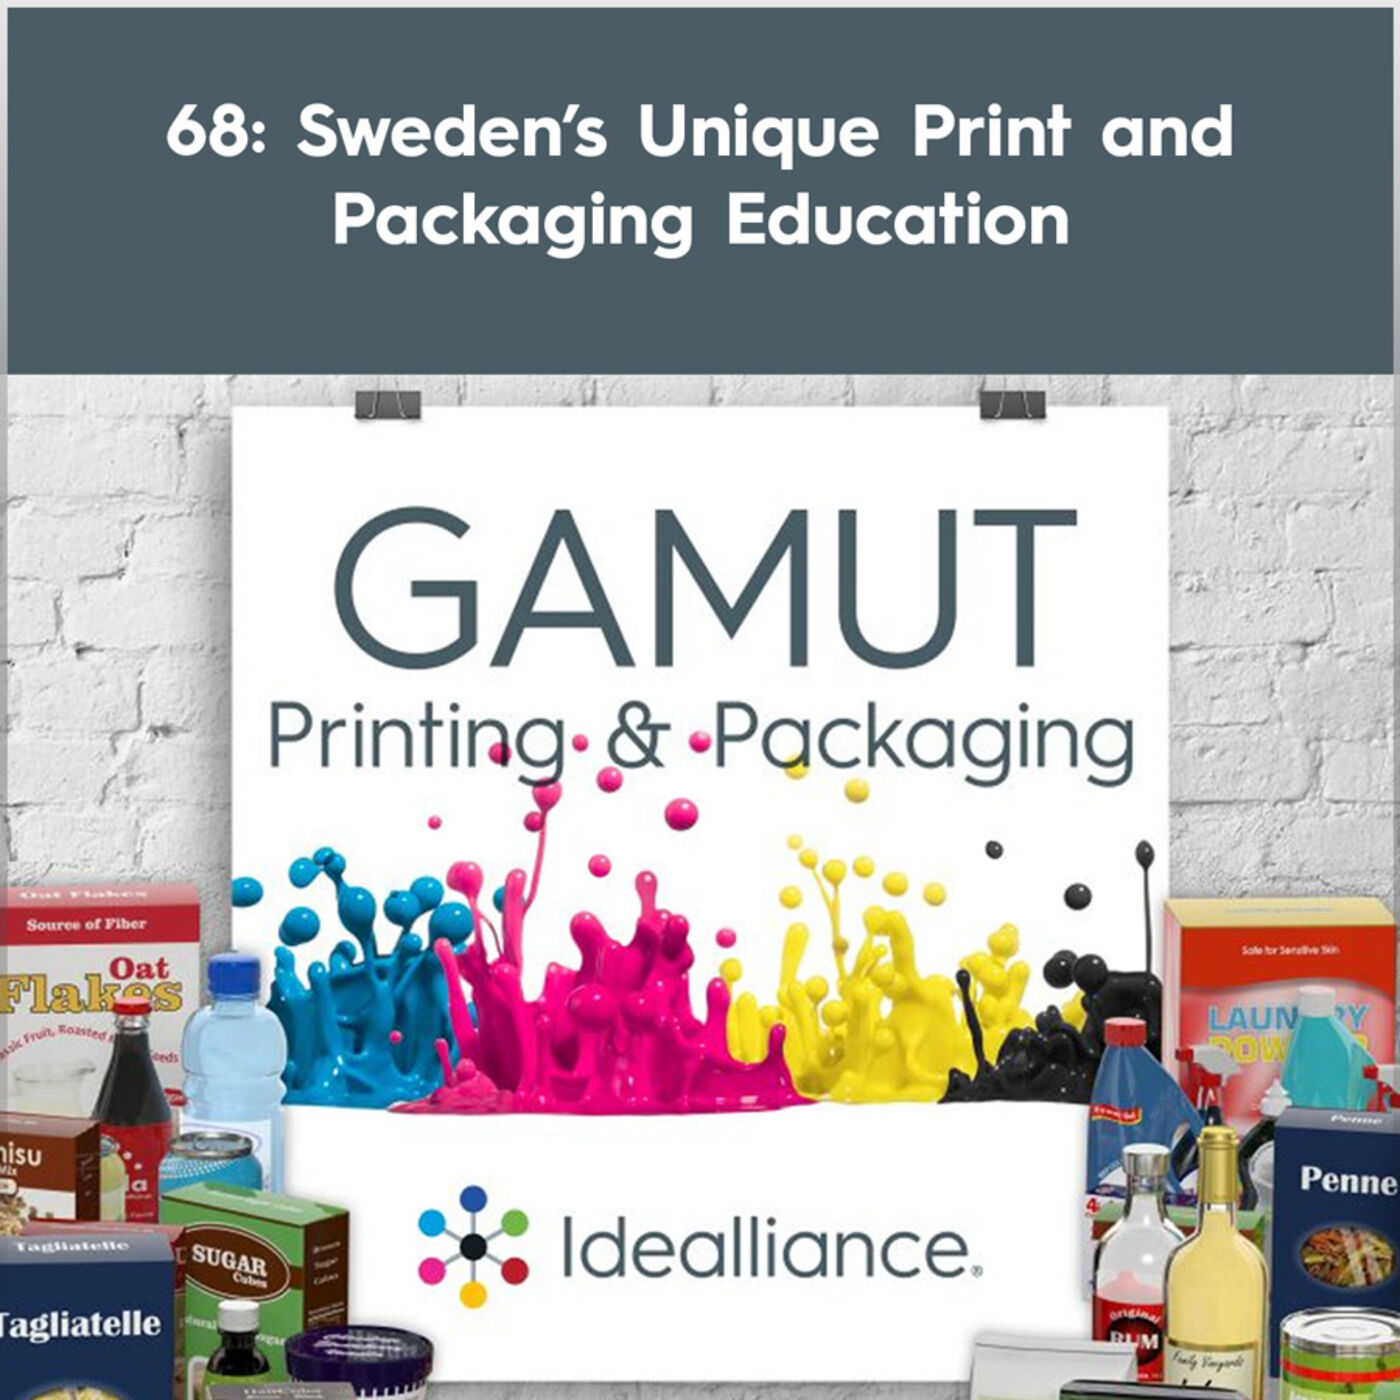 68: Sweden's Unique Print and Packaging Education